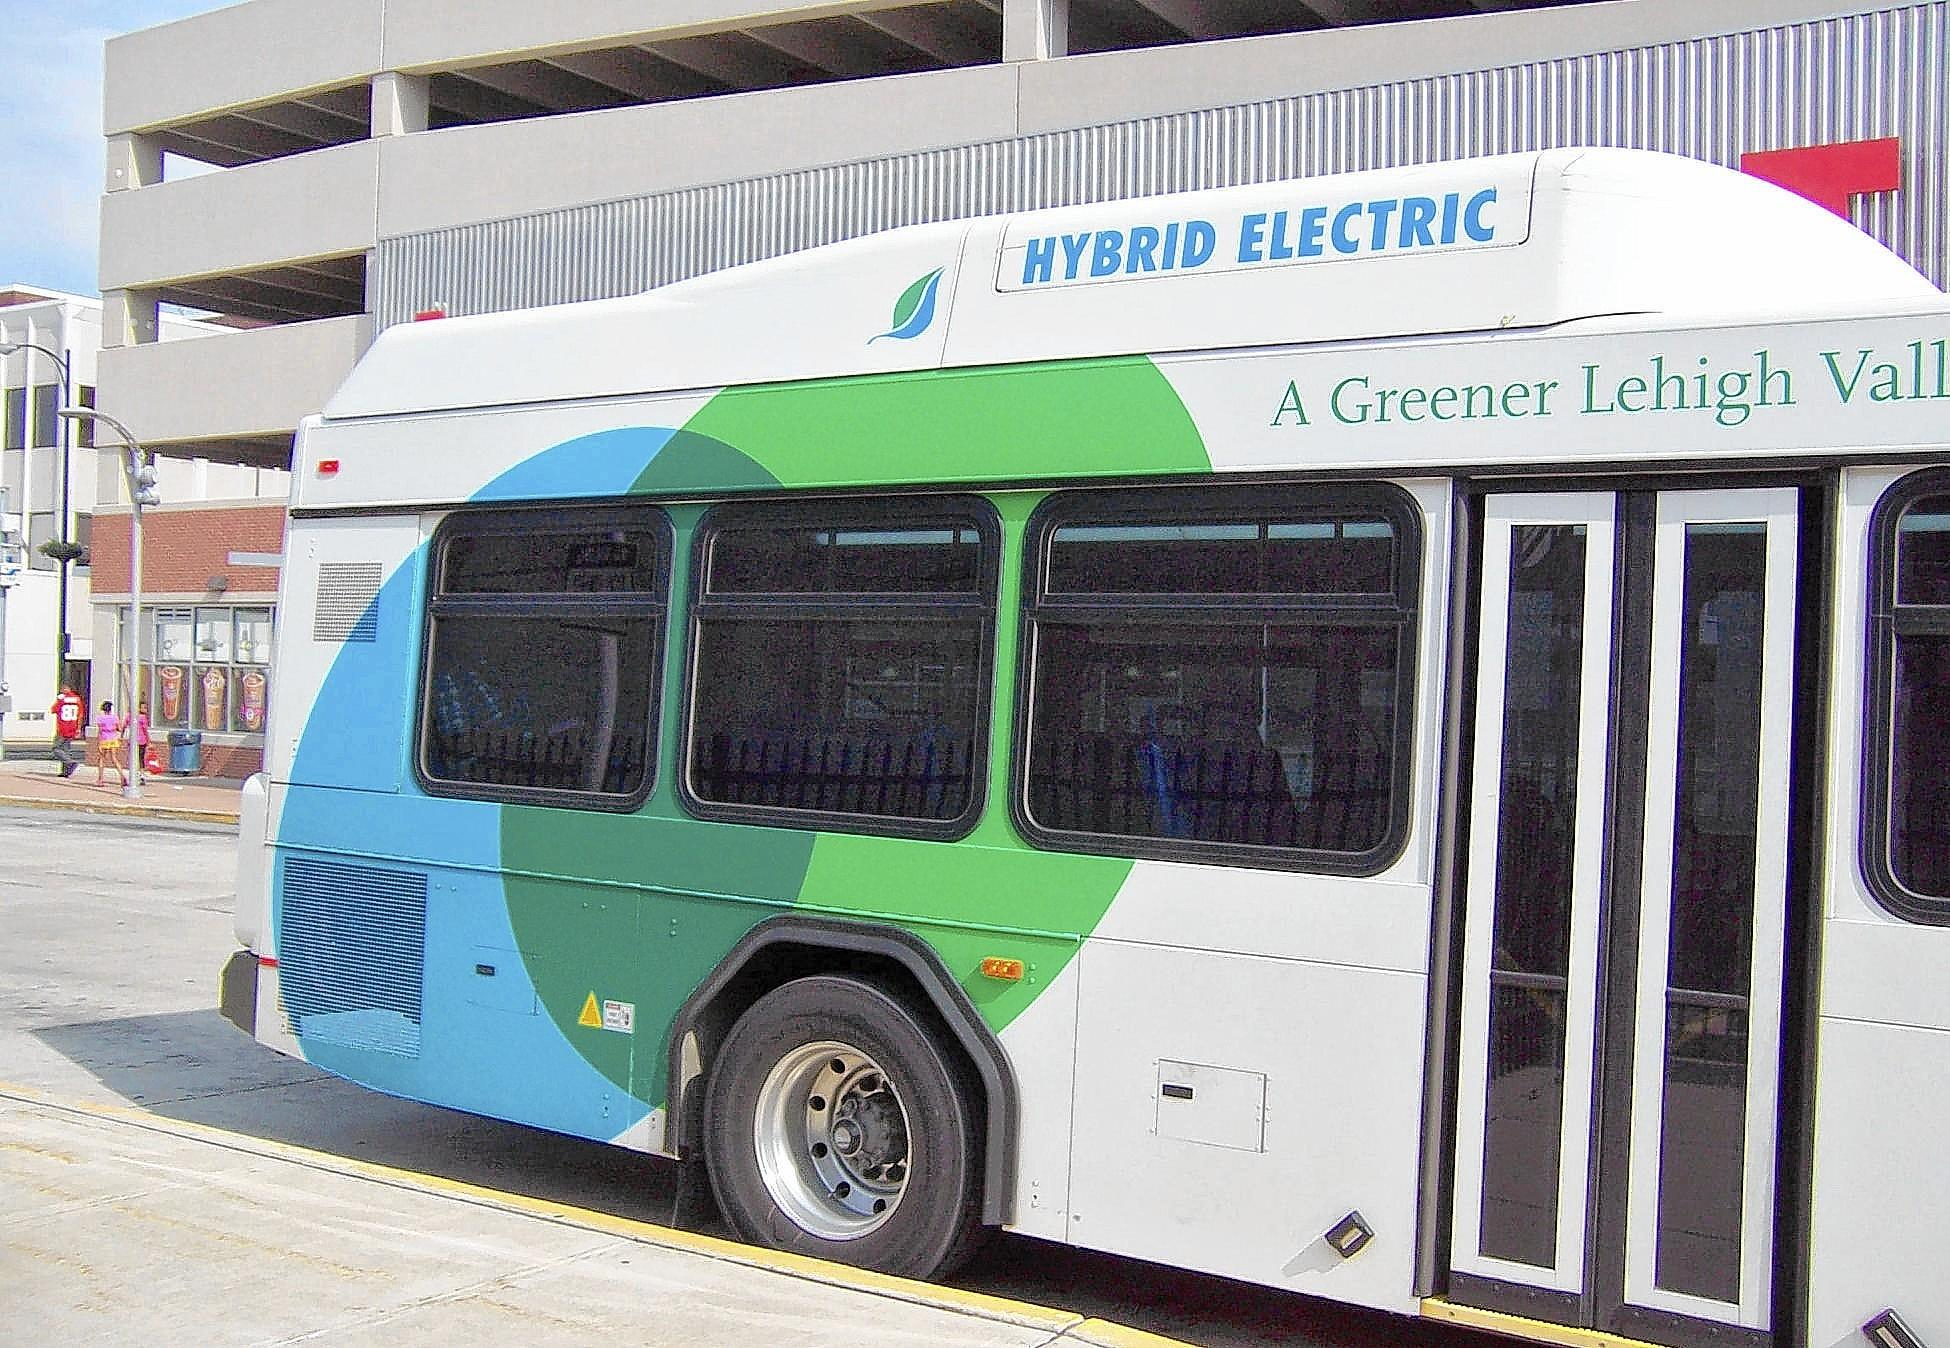 LANTA's diesel-electric hybrid buses are almost identical in appearance to the standard diesel-engine buses, except for the raised storage areas for the batteries at the rear of the vehicle.